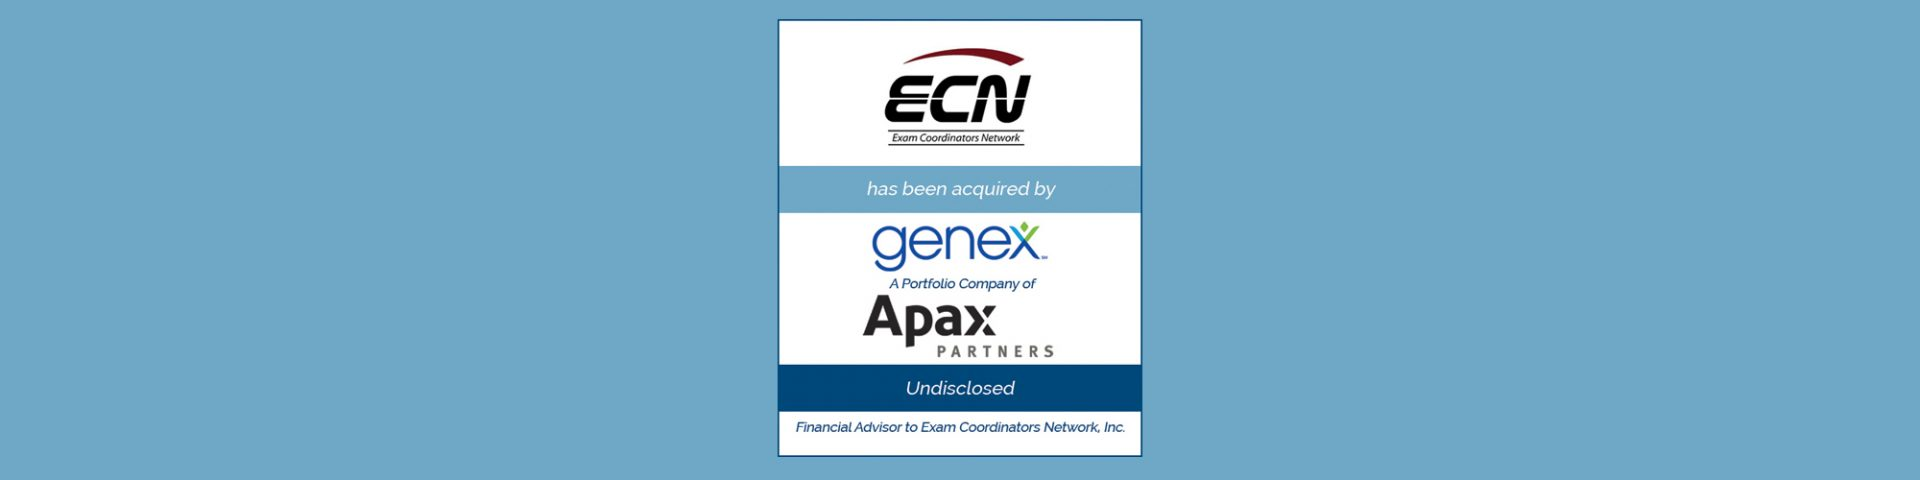 Genex Services Acquires Exam Coordinators Network | Bailey Southwell & Co.